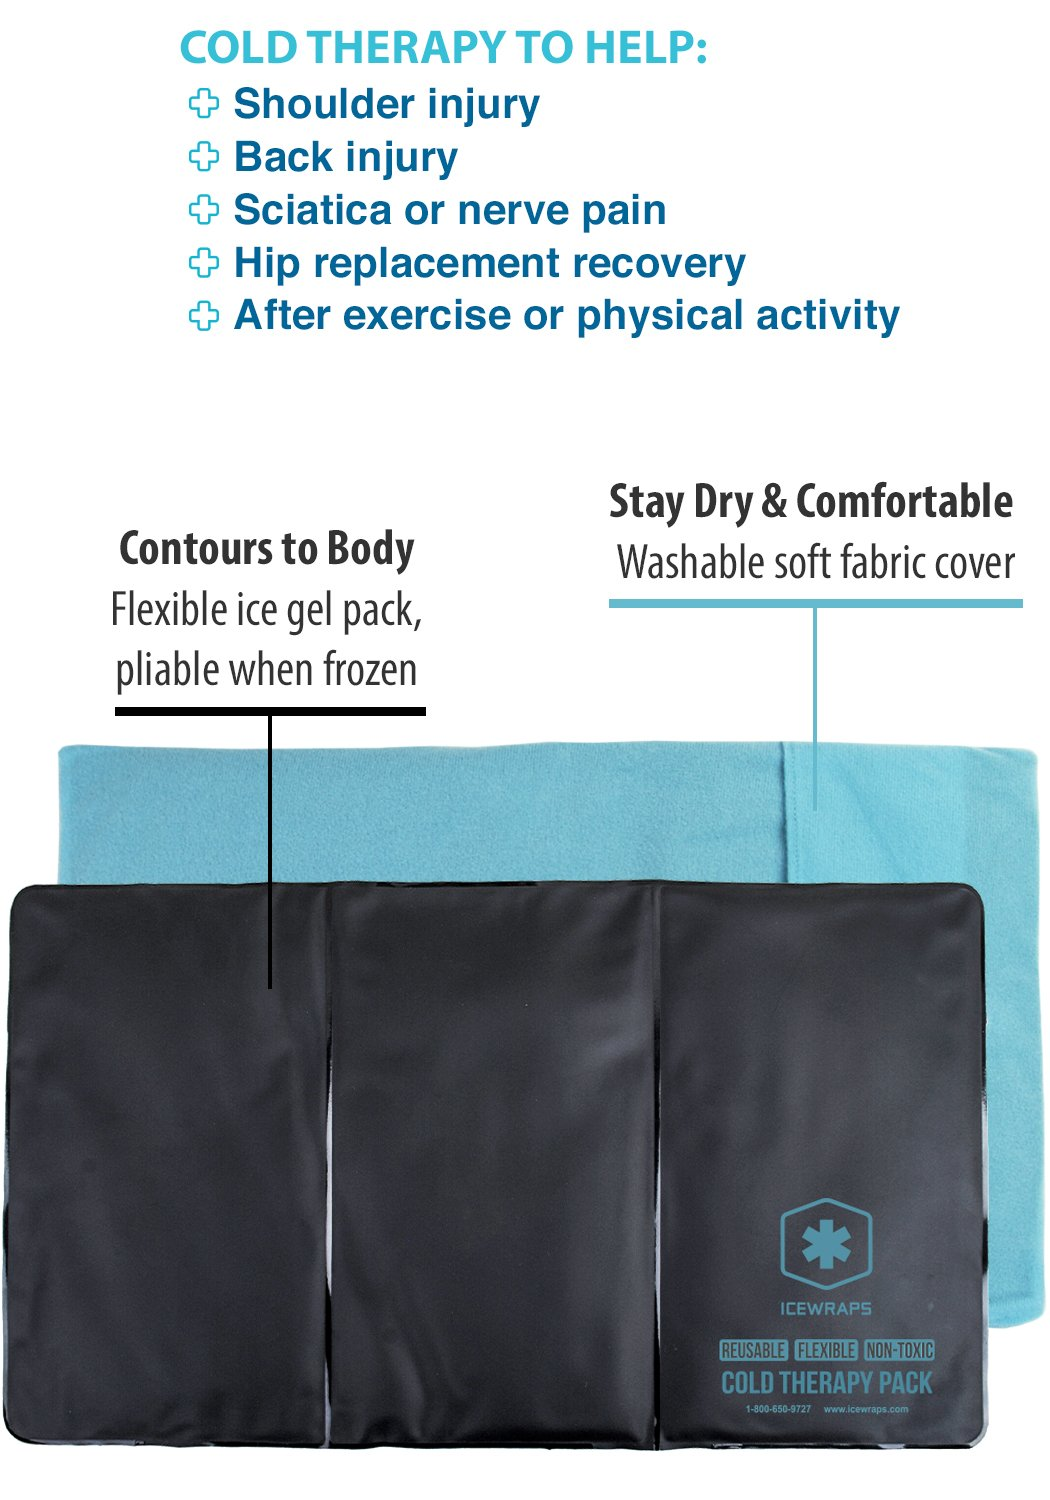 IceWraps Flexible Gel Cold Pack For Therapy - 12''x21'' Oversize Knee, Sciatica, or Back Gel Ice Pack - Includes Free Bonus Cover by IceWraps (Image #2)